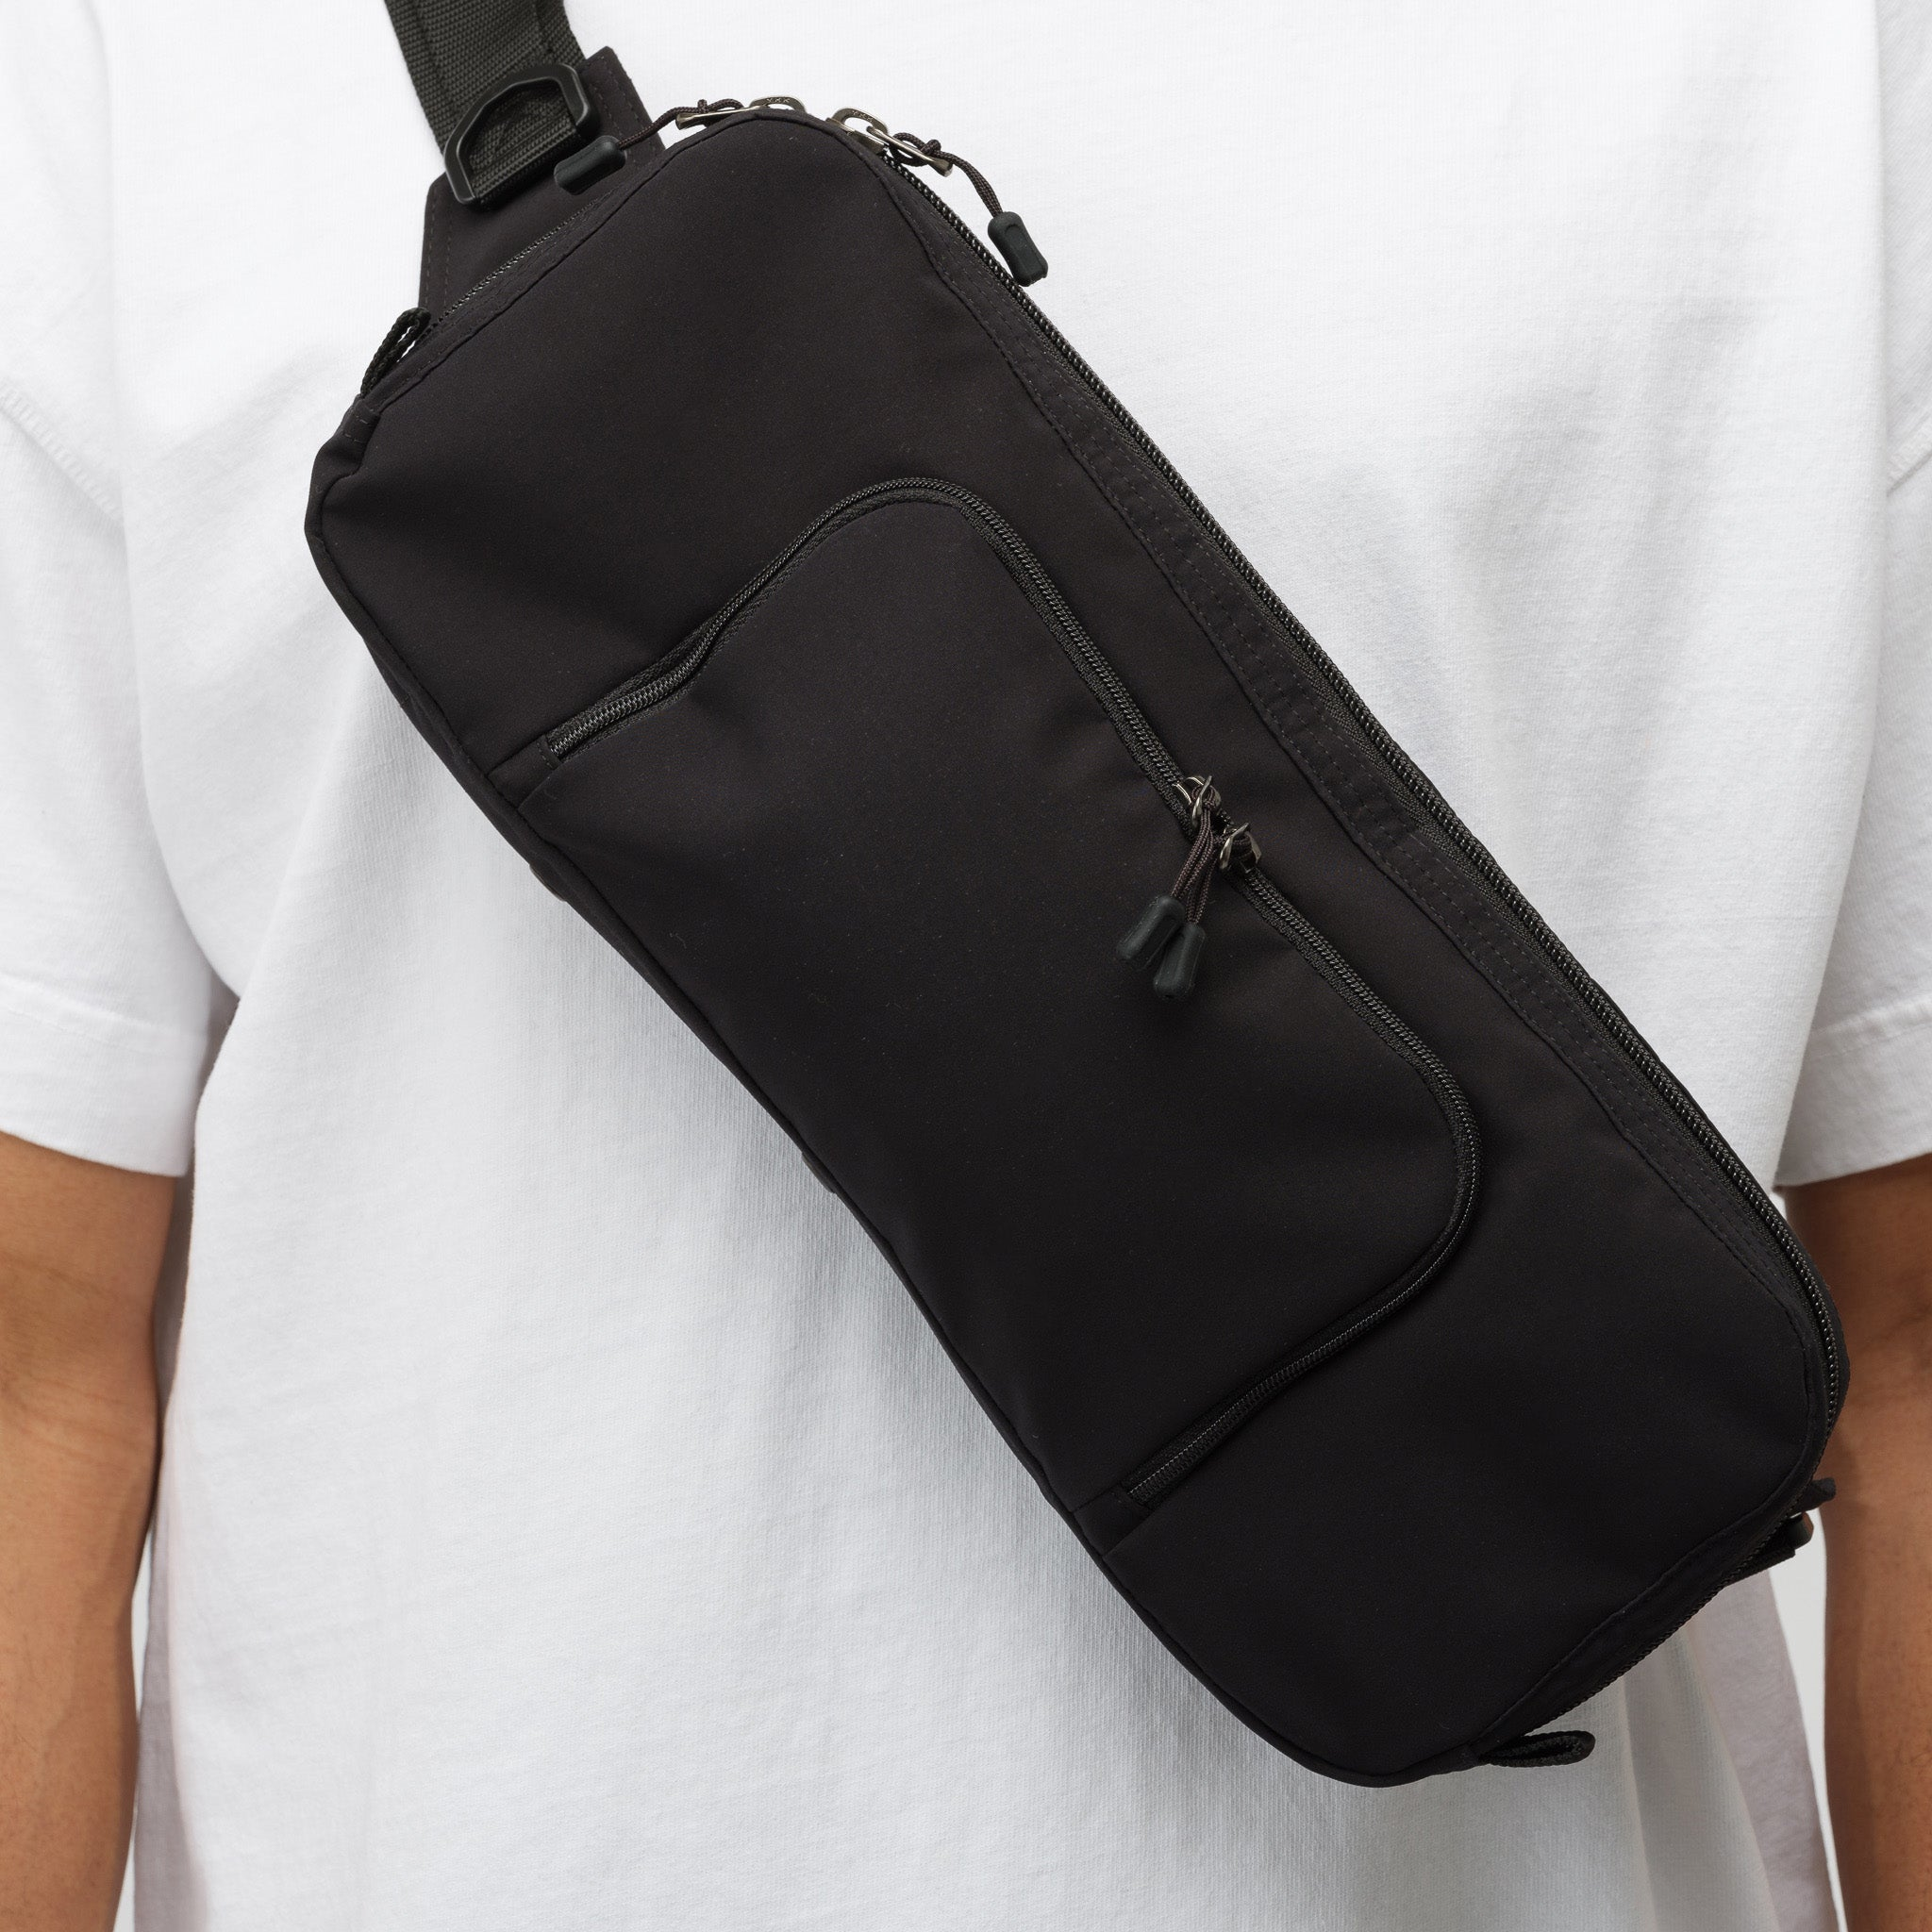 Waist Pouch in Black